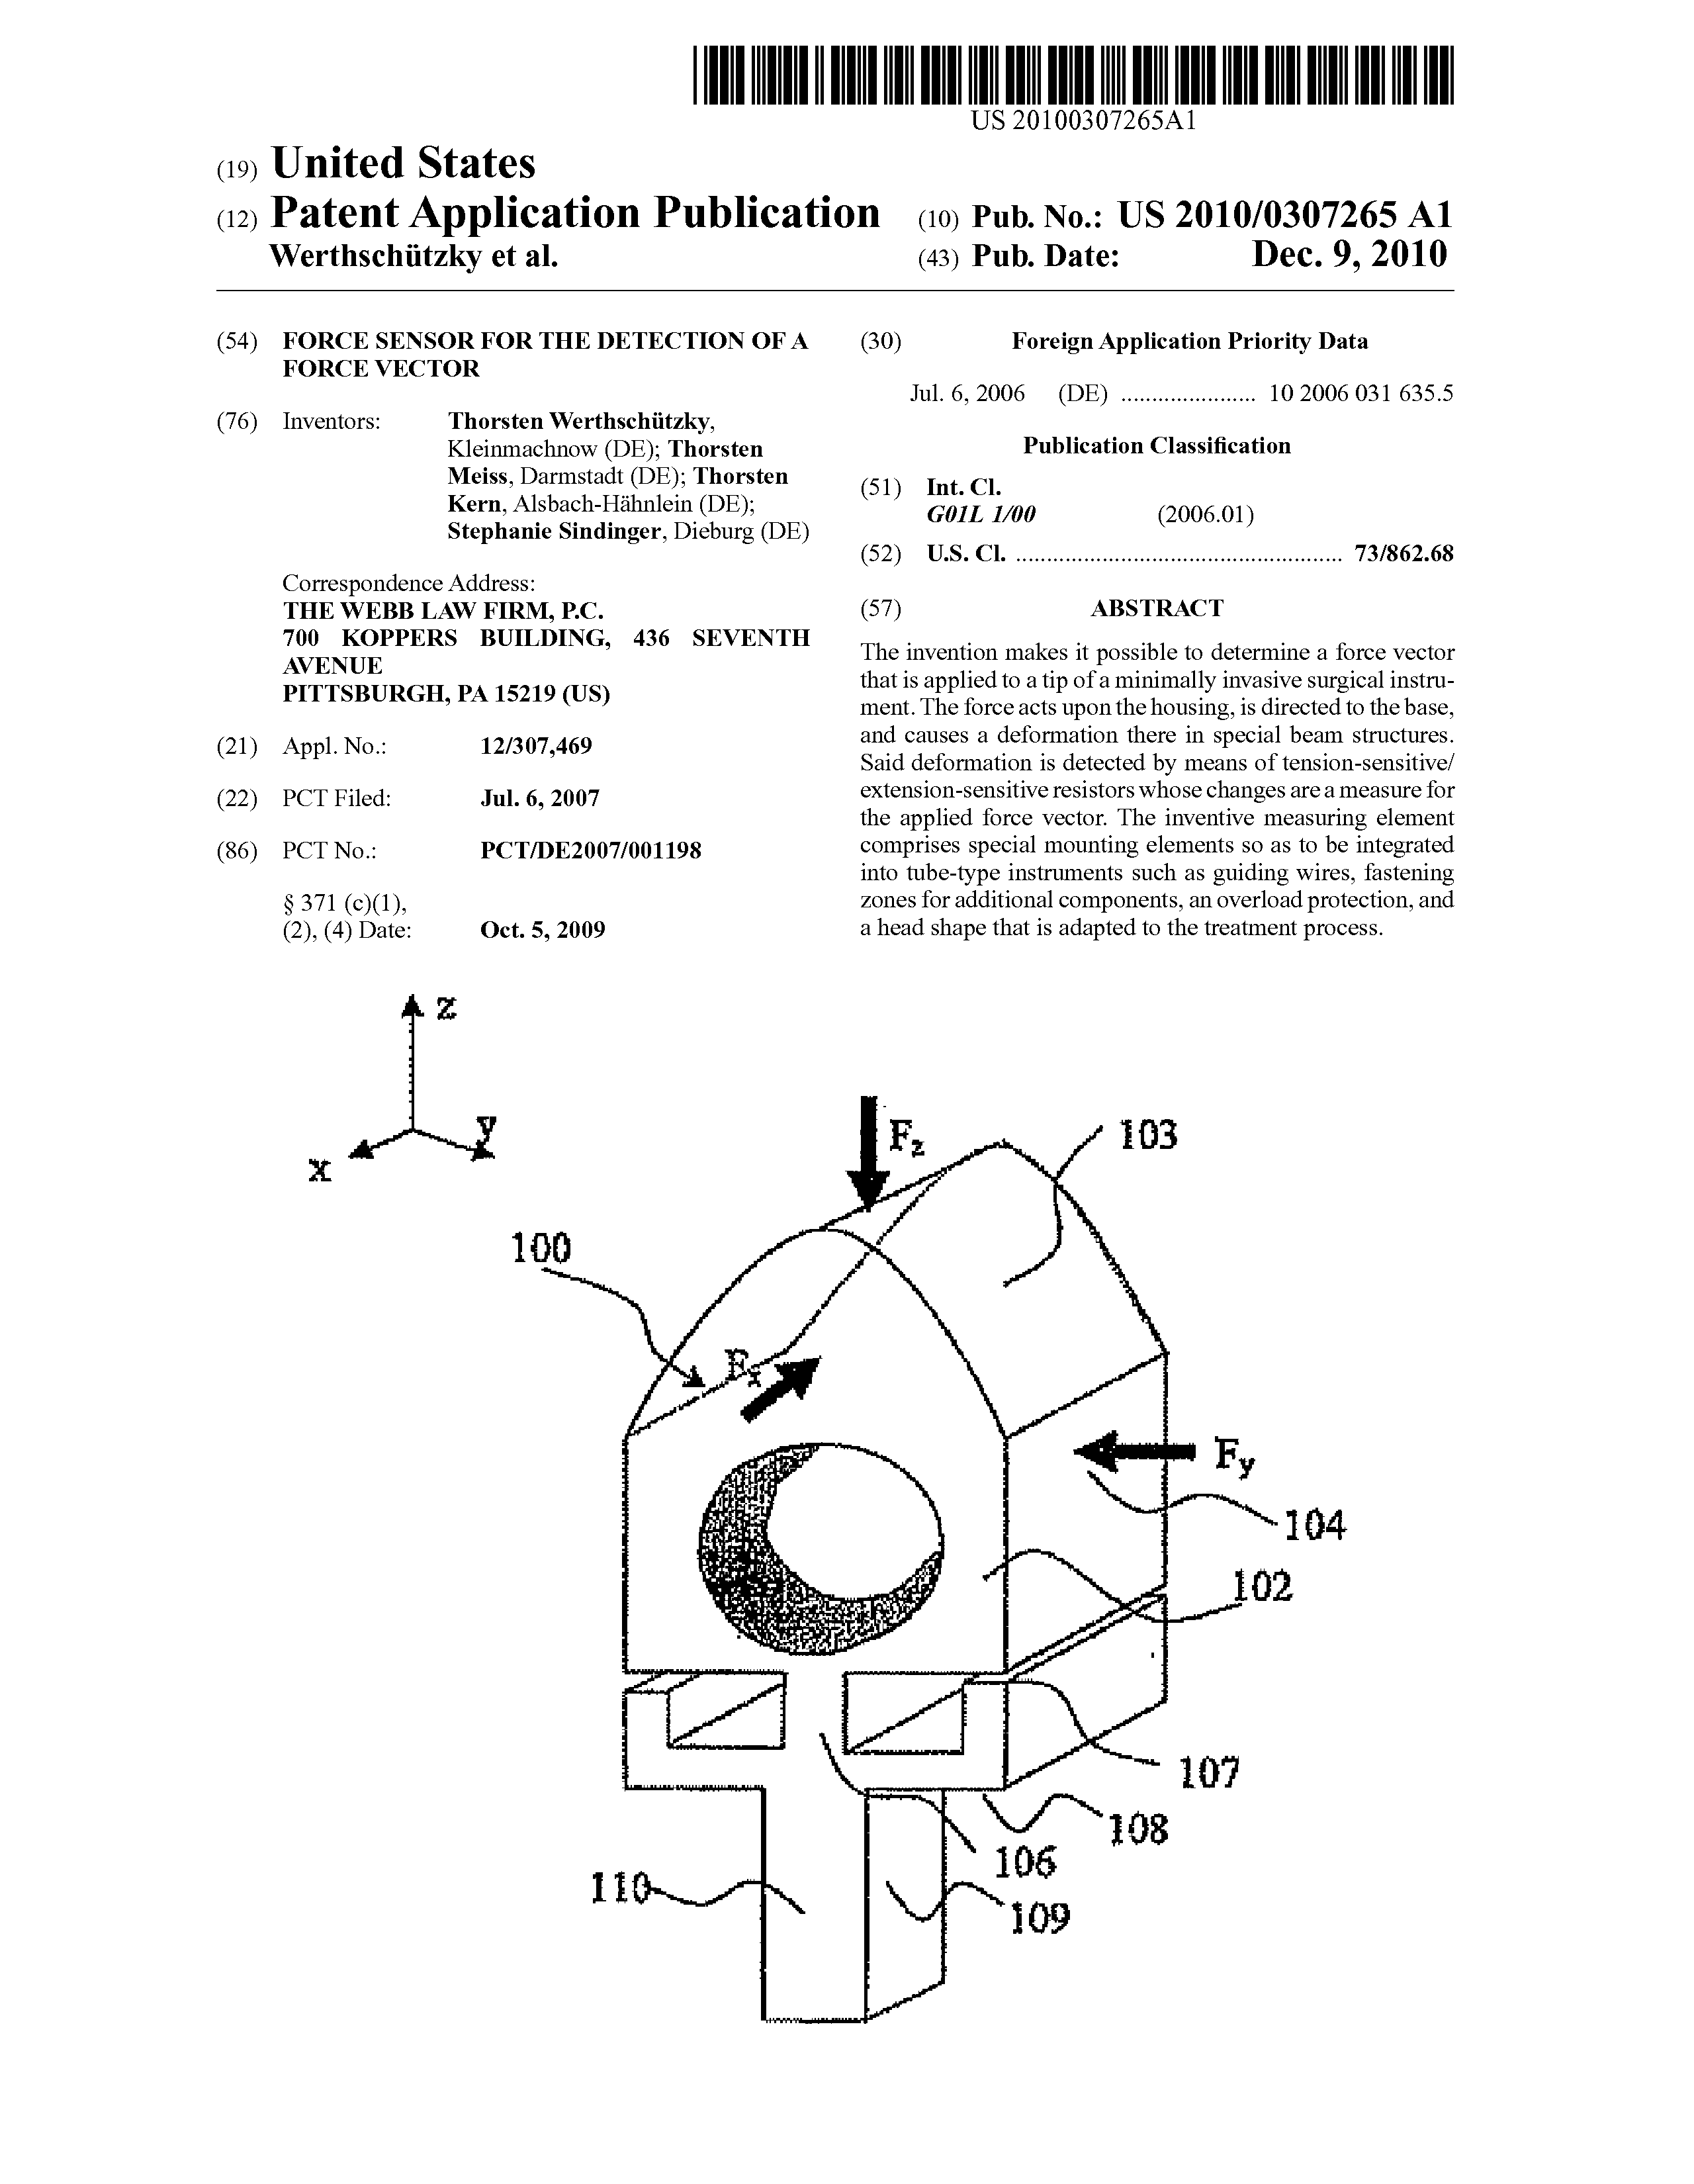 EP 2040636 A2 - Force Sensor For The Detection Of A Force